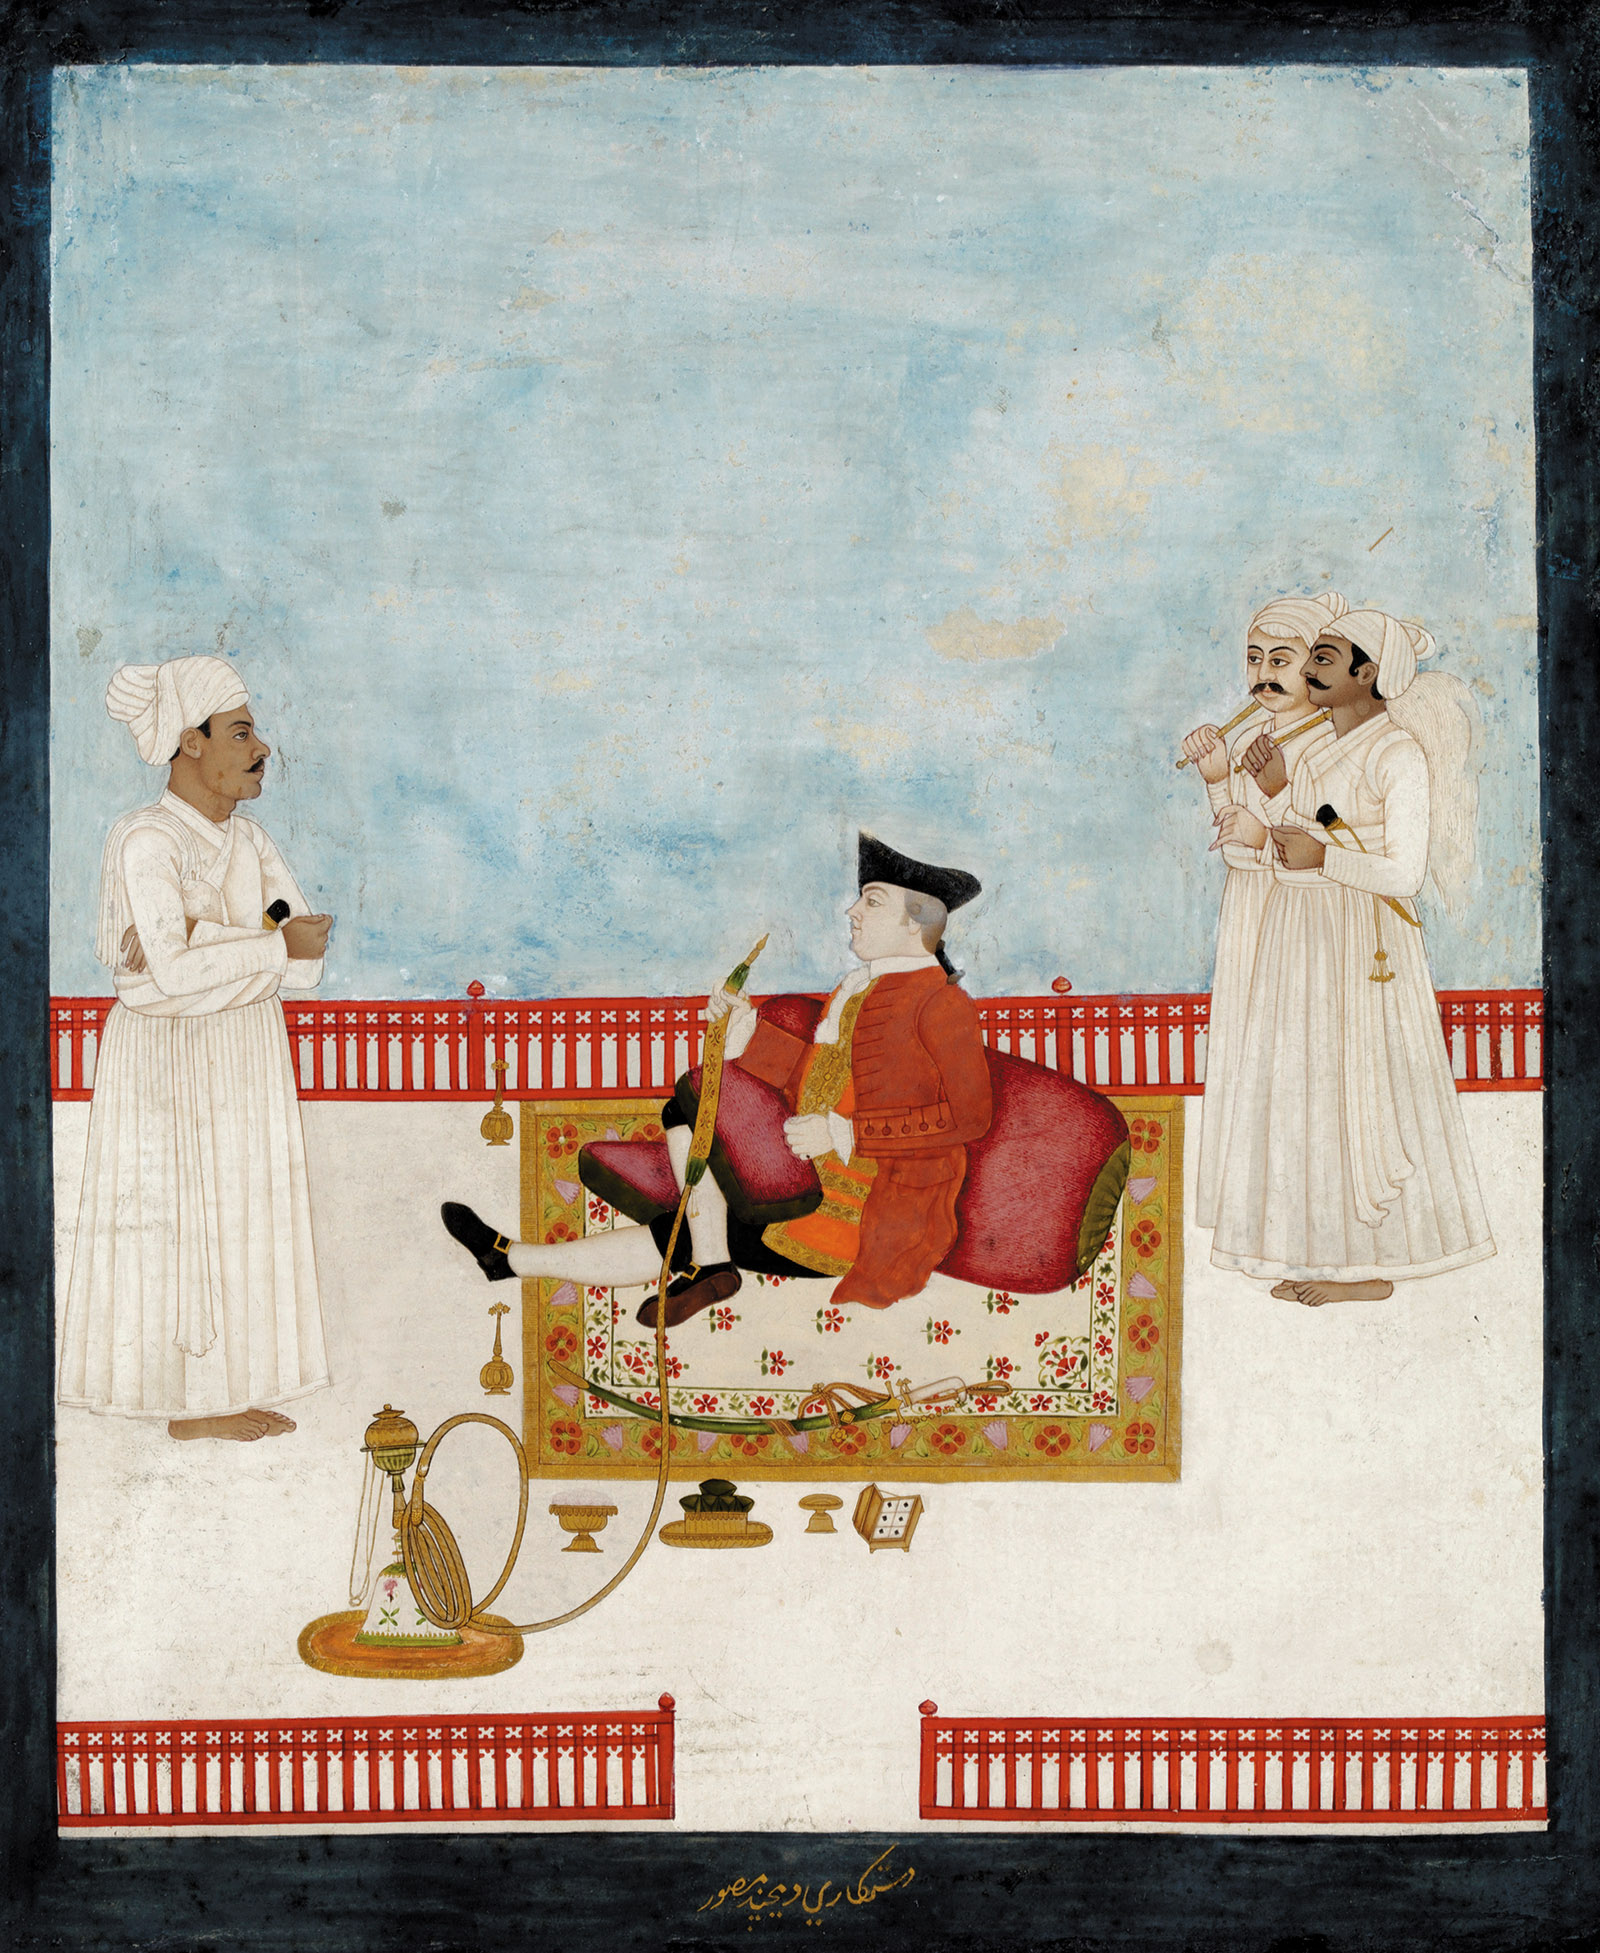 An East India Company official with attendants; painting by Dip Chand